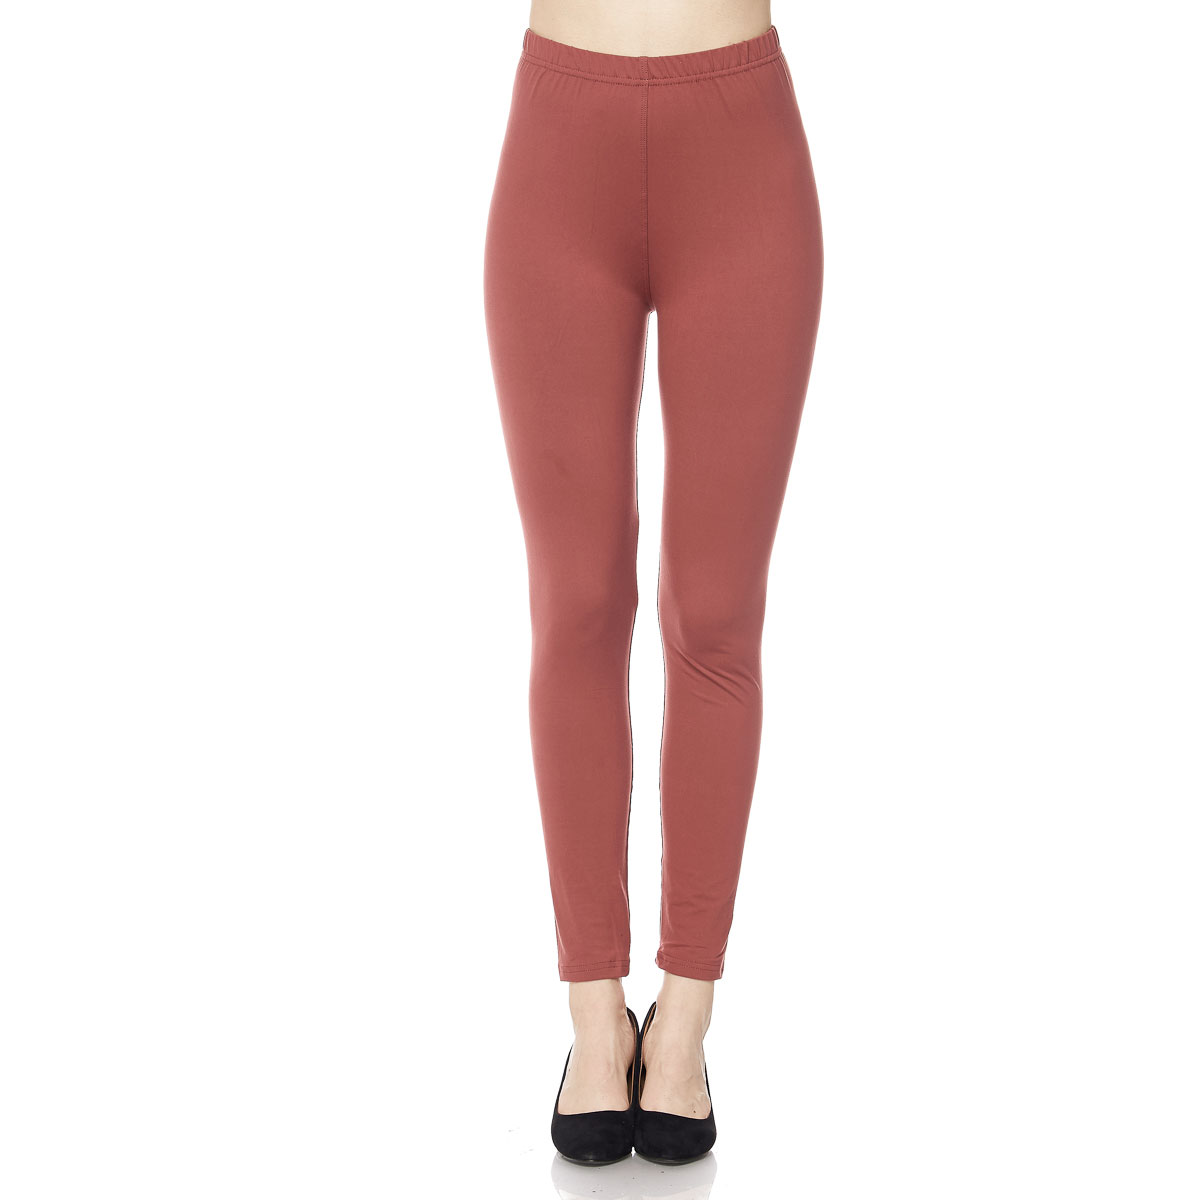 Brushed Fiber Leggings - Ankle Length Solids SOL0S - Marsala Brushed Fiber Leggings - Ankle Length Solids